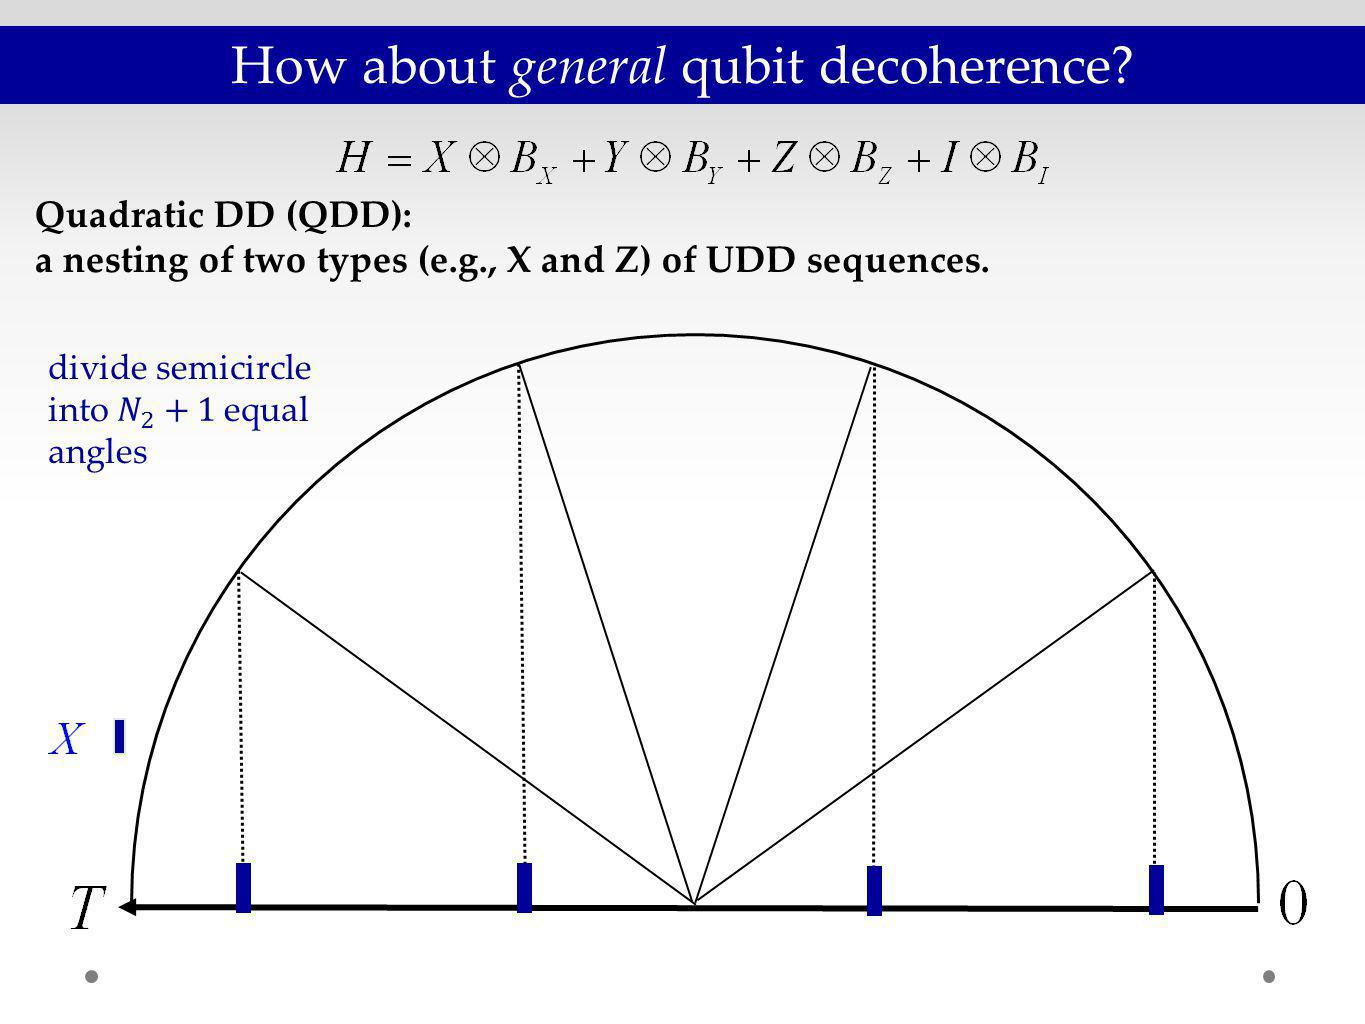 Quadratic DD (QDD): a nesting of two types (e.g., X and Z) of UDD sequences.